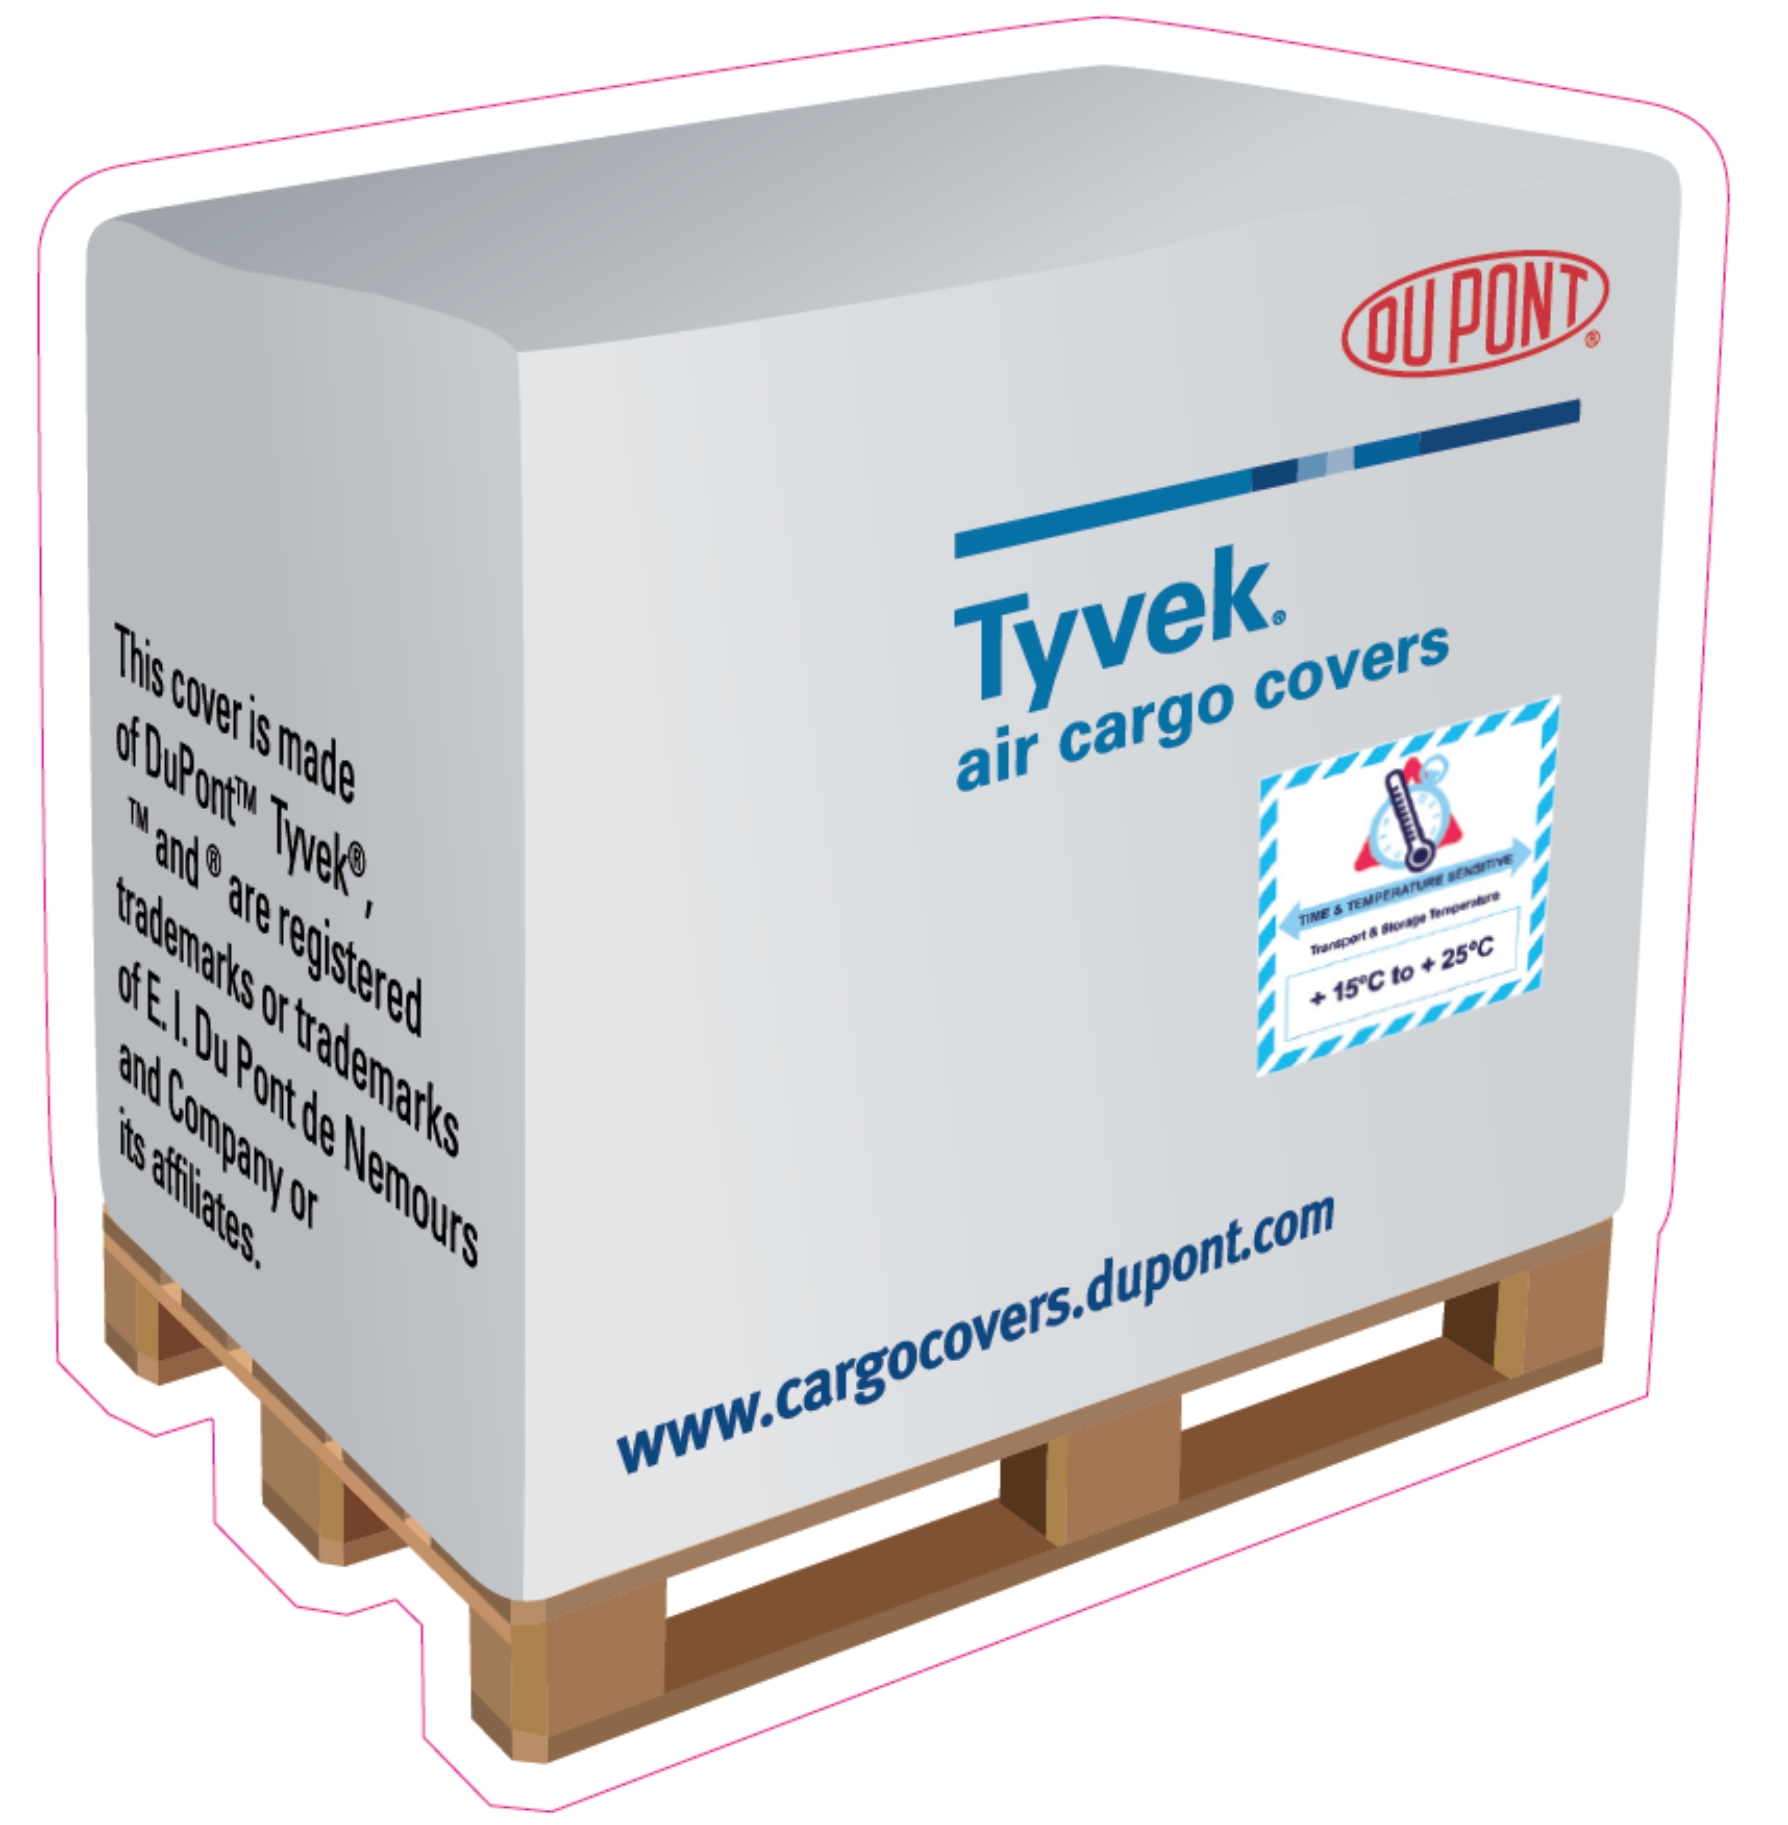 Marshall Hinds, South Africa distributors for Tyvek® from DuPont